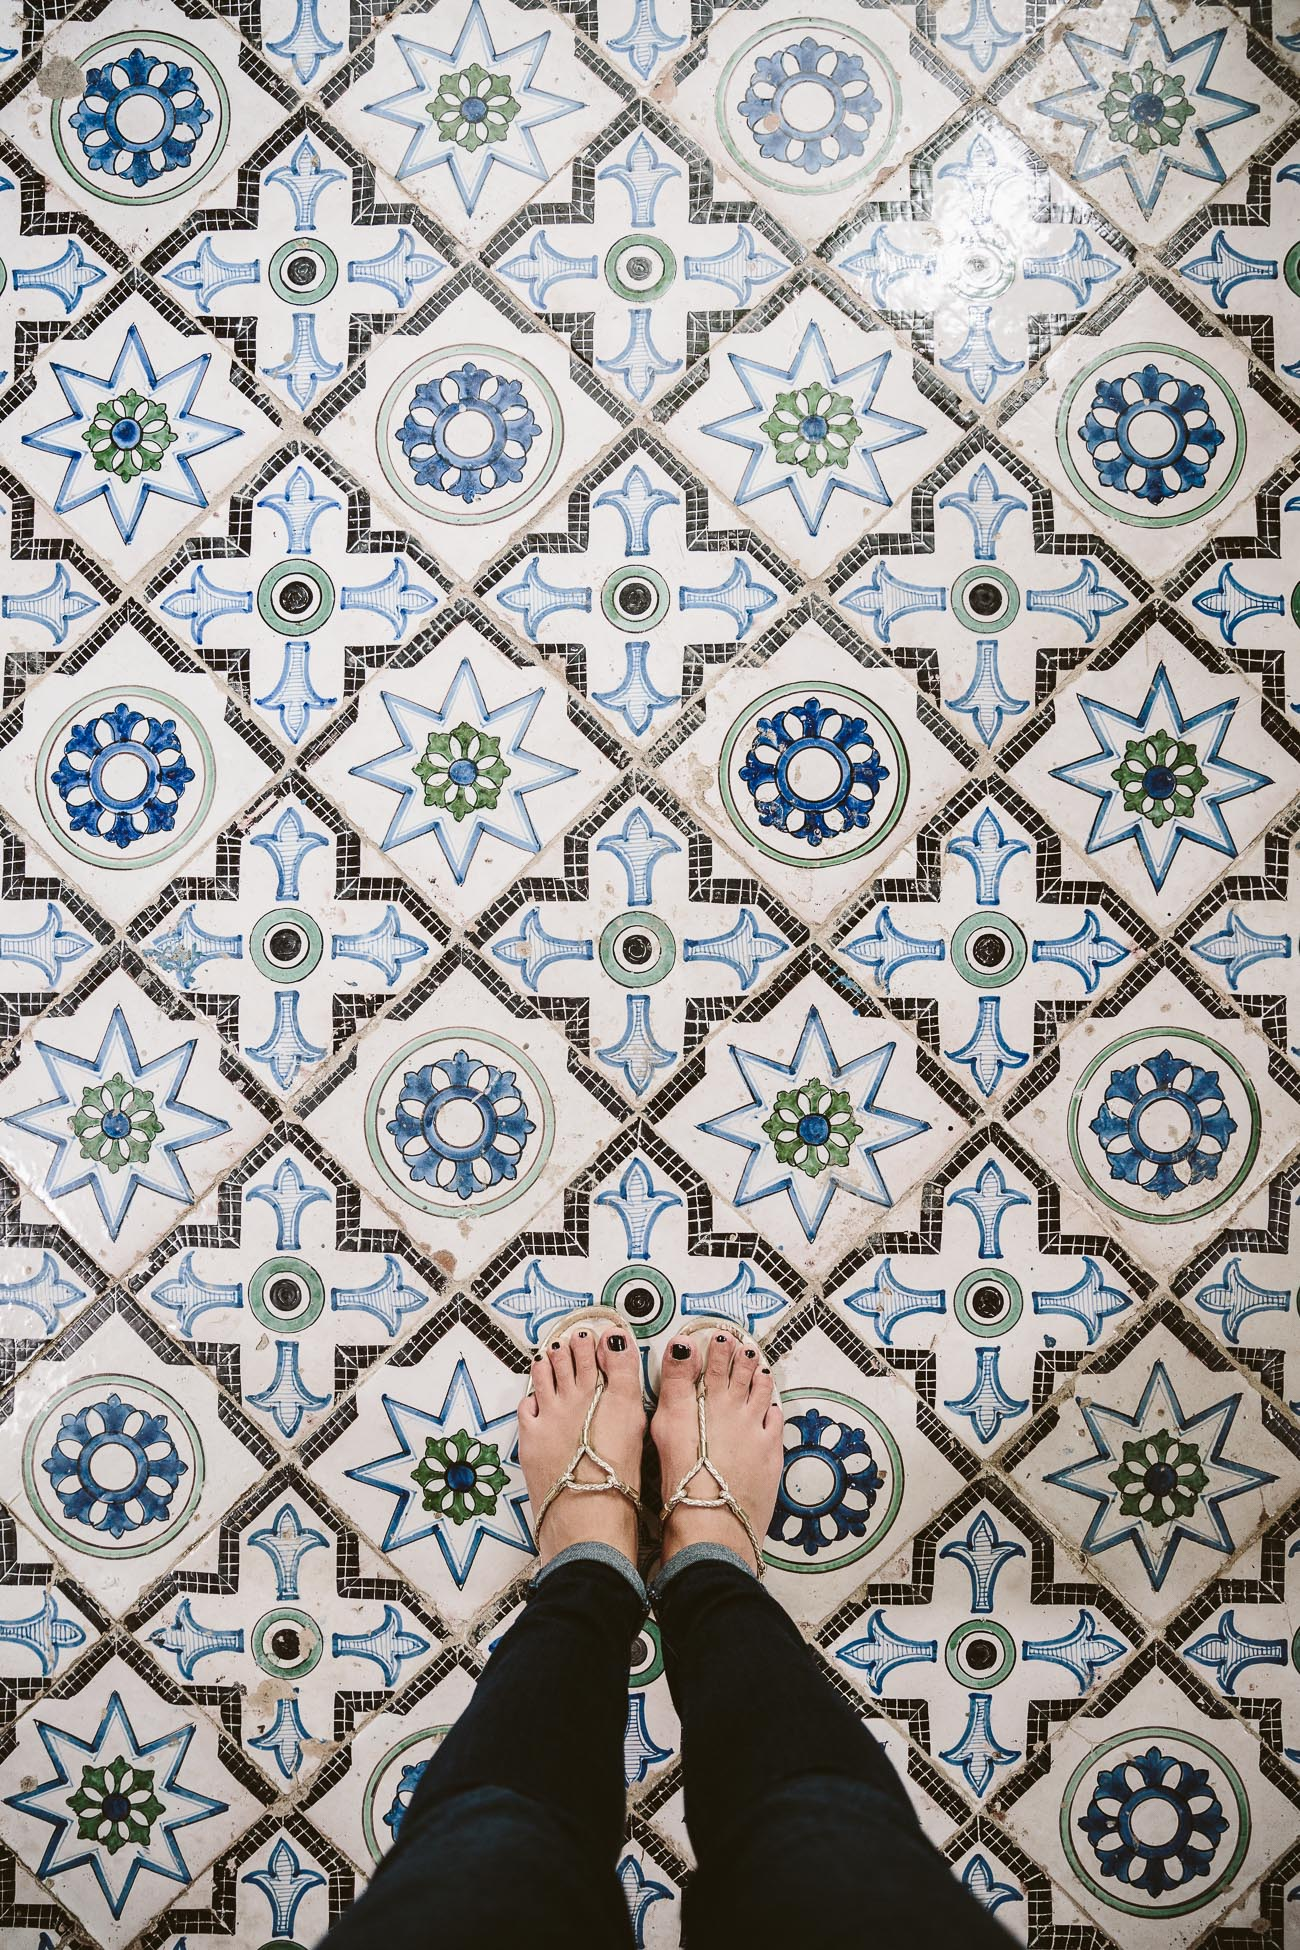 Tile floor of Villa Rufolo, Ravello, Amalfi Coast